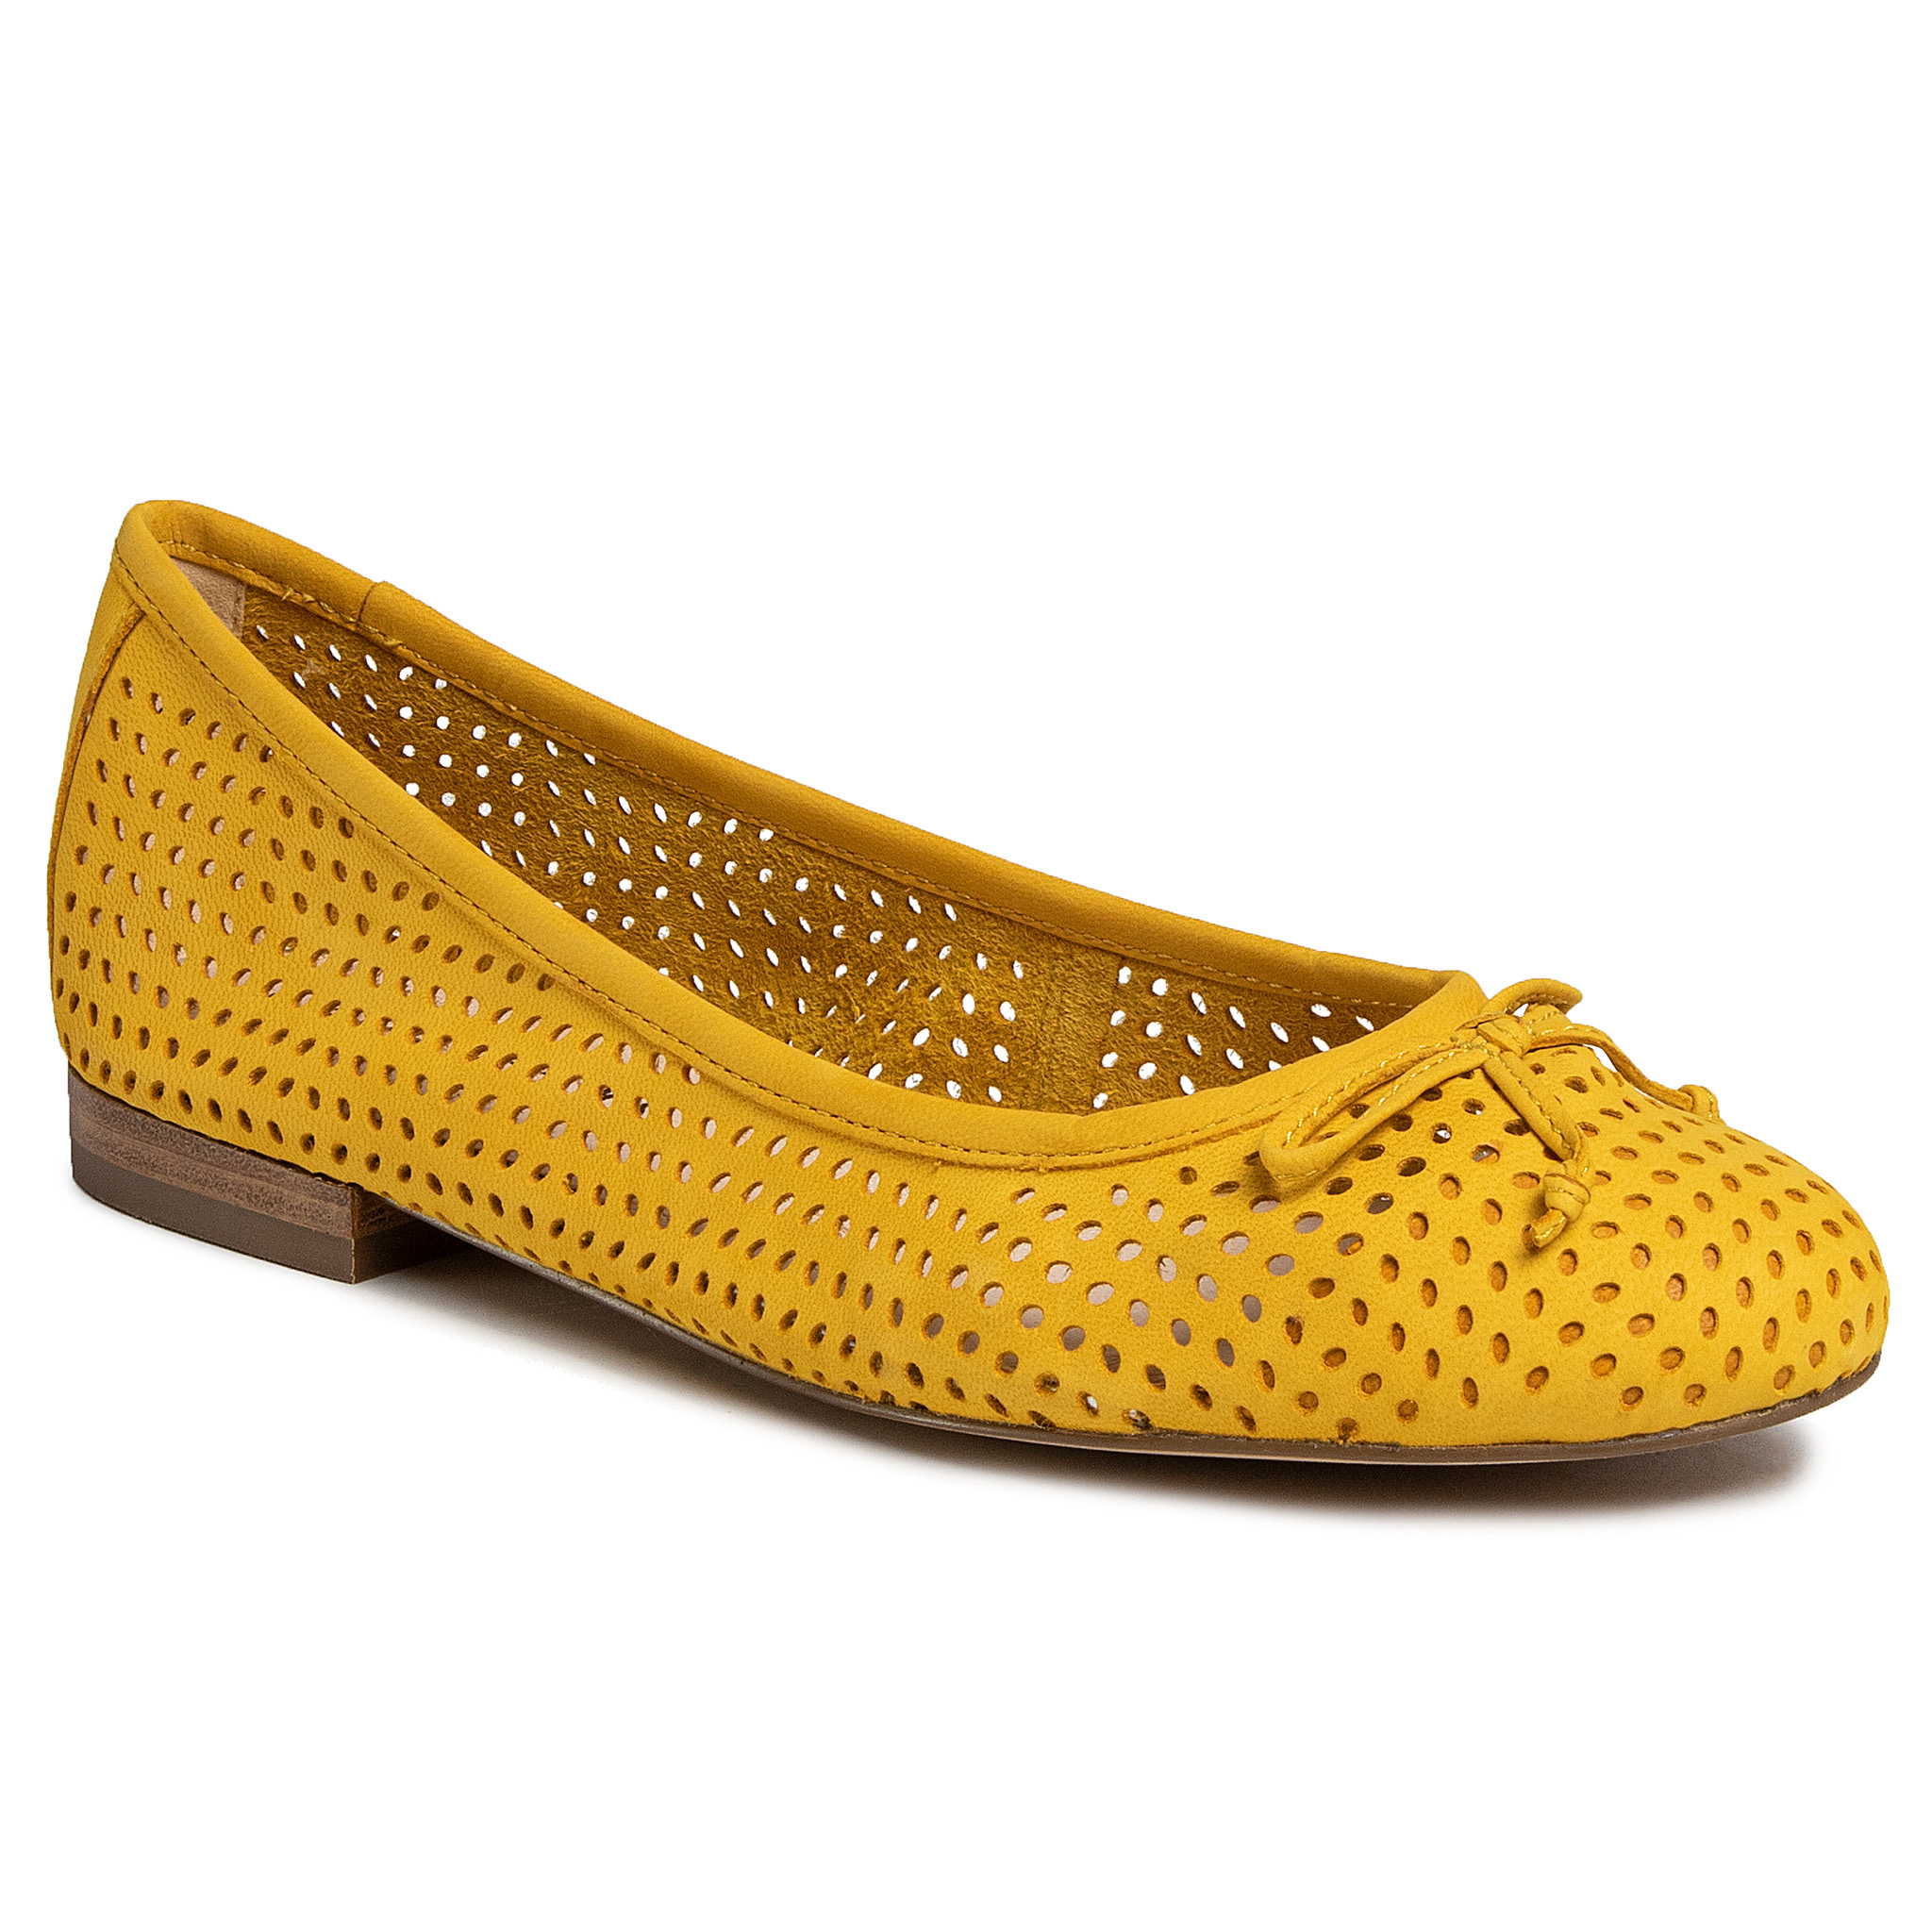 Balerini Caprice - 9-22101-24 Yellow Nubuc 601 imagine epantofi.ro